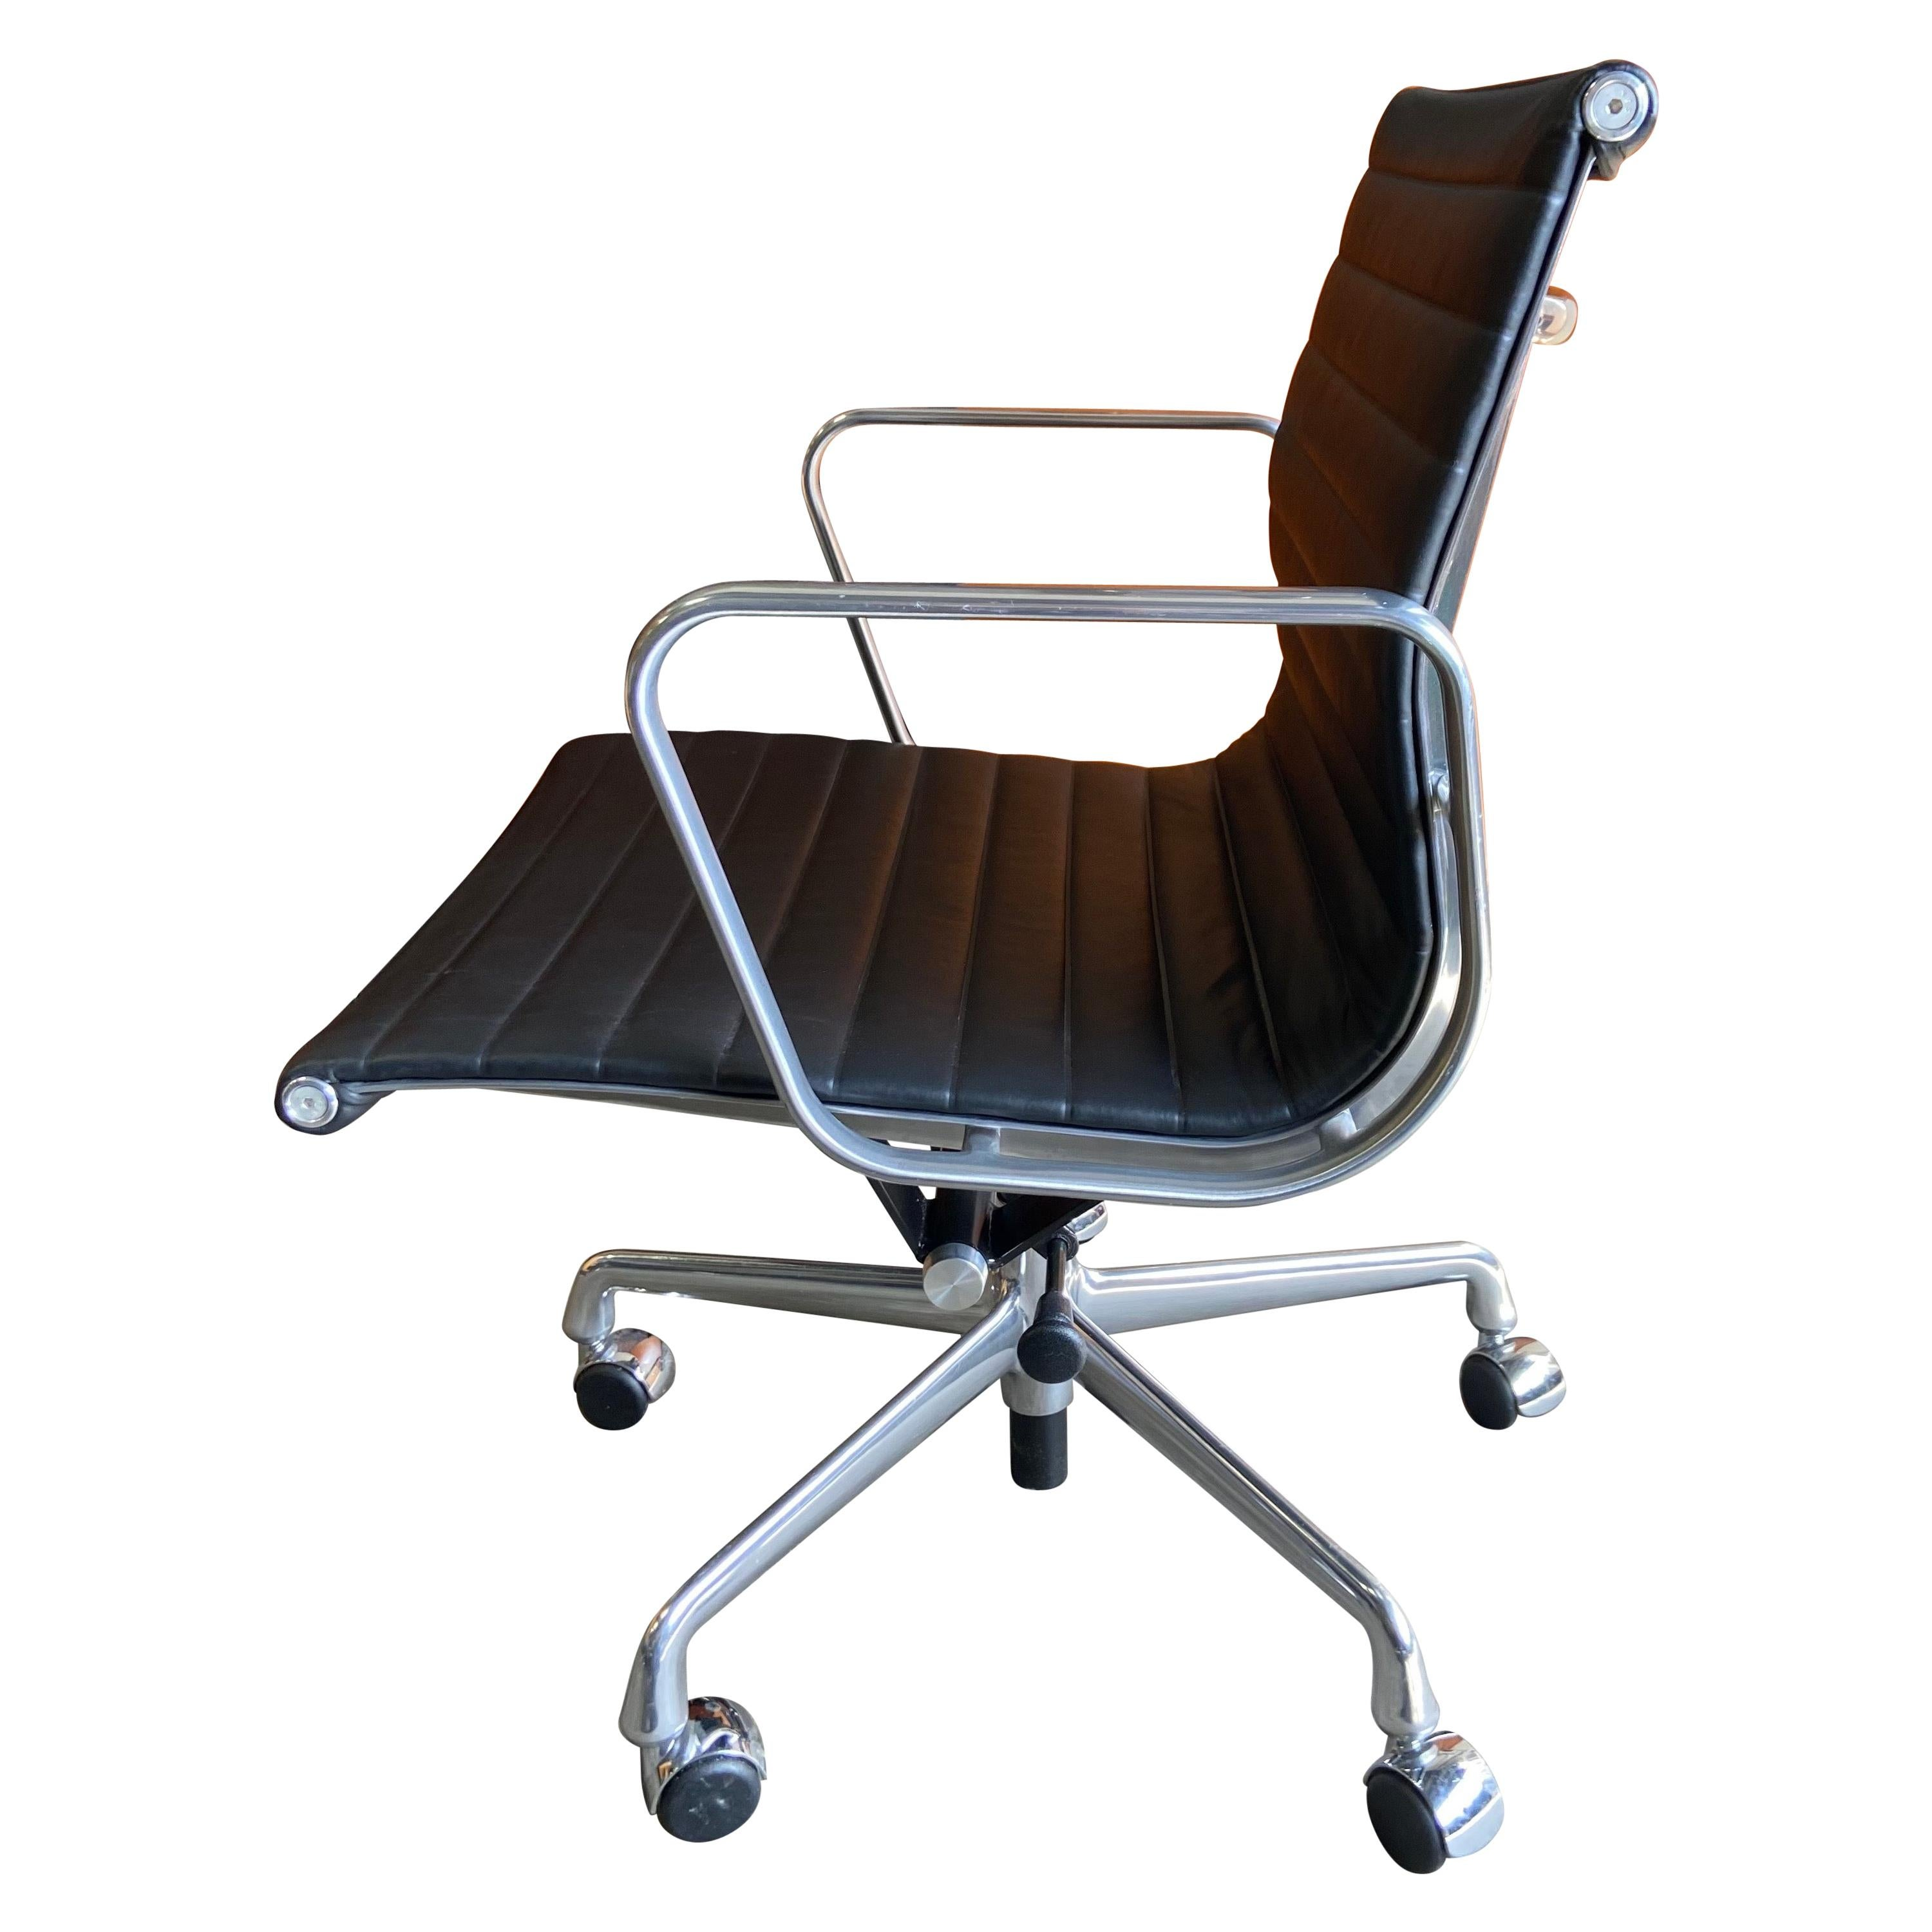 Midcentury Aluminum Group Chairs in Black Leather Near New Old Stock